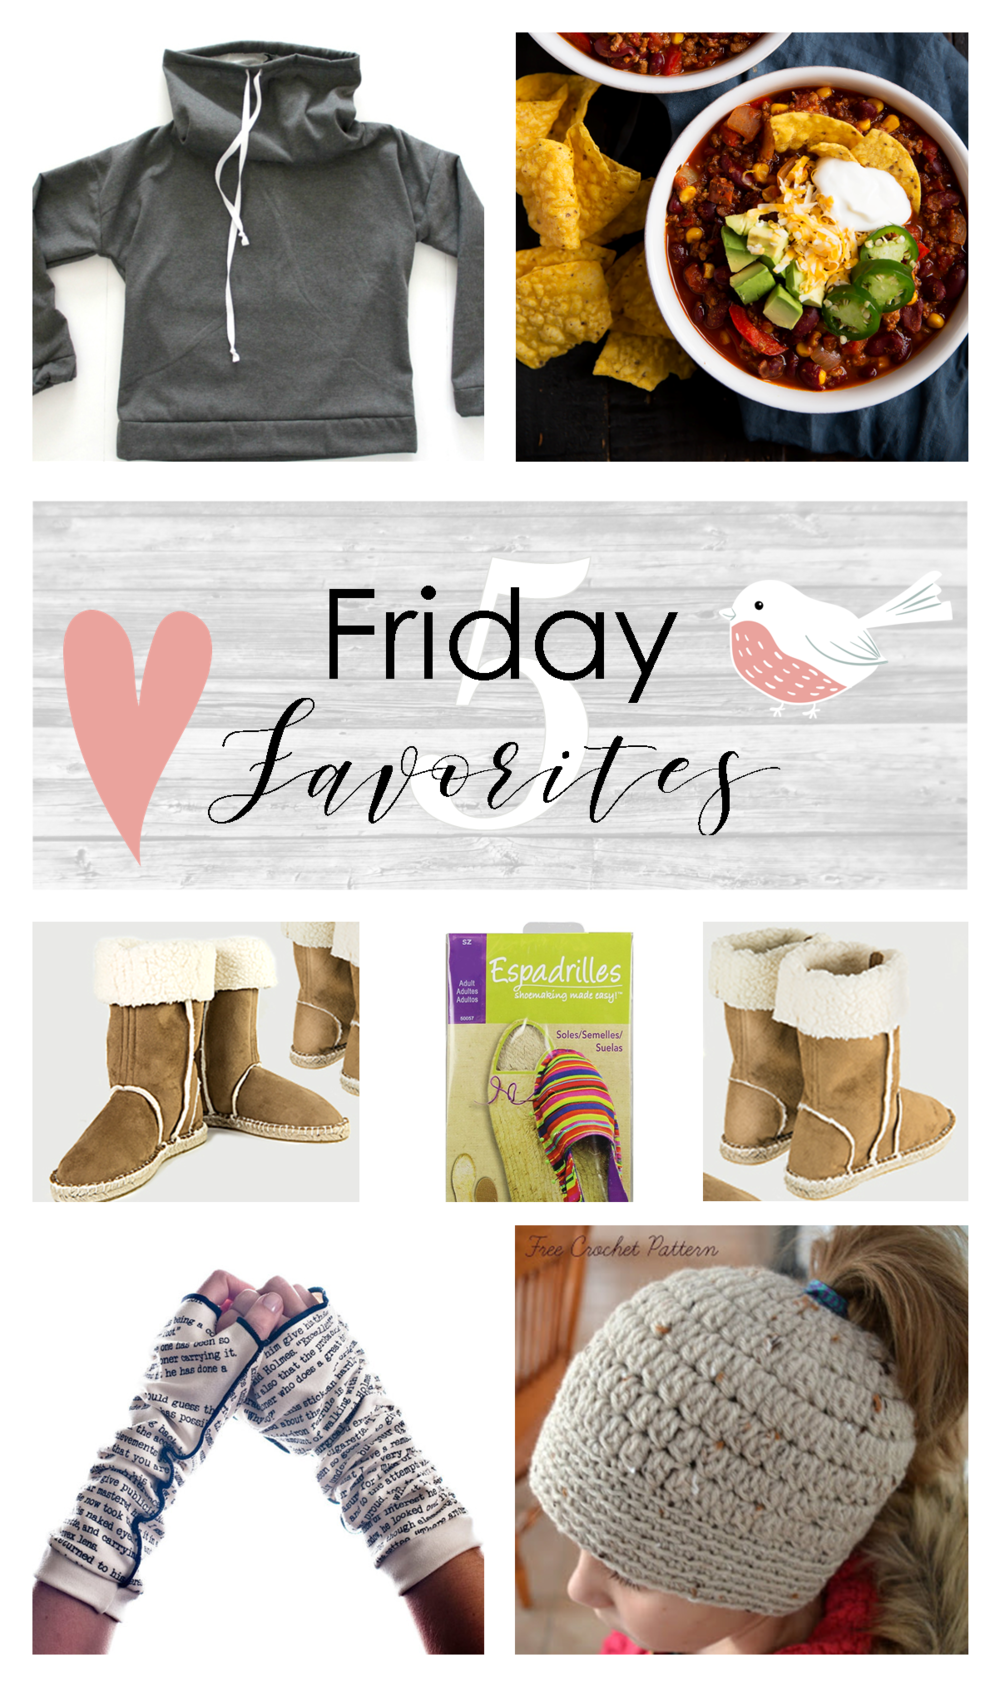 Friday Favorites 01.13.2017